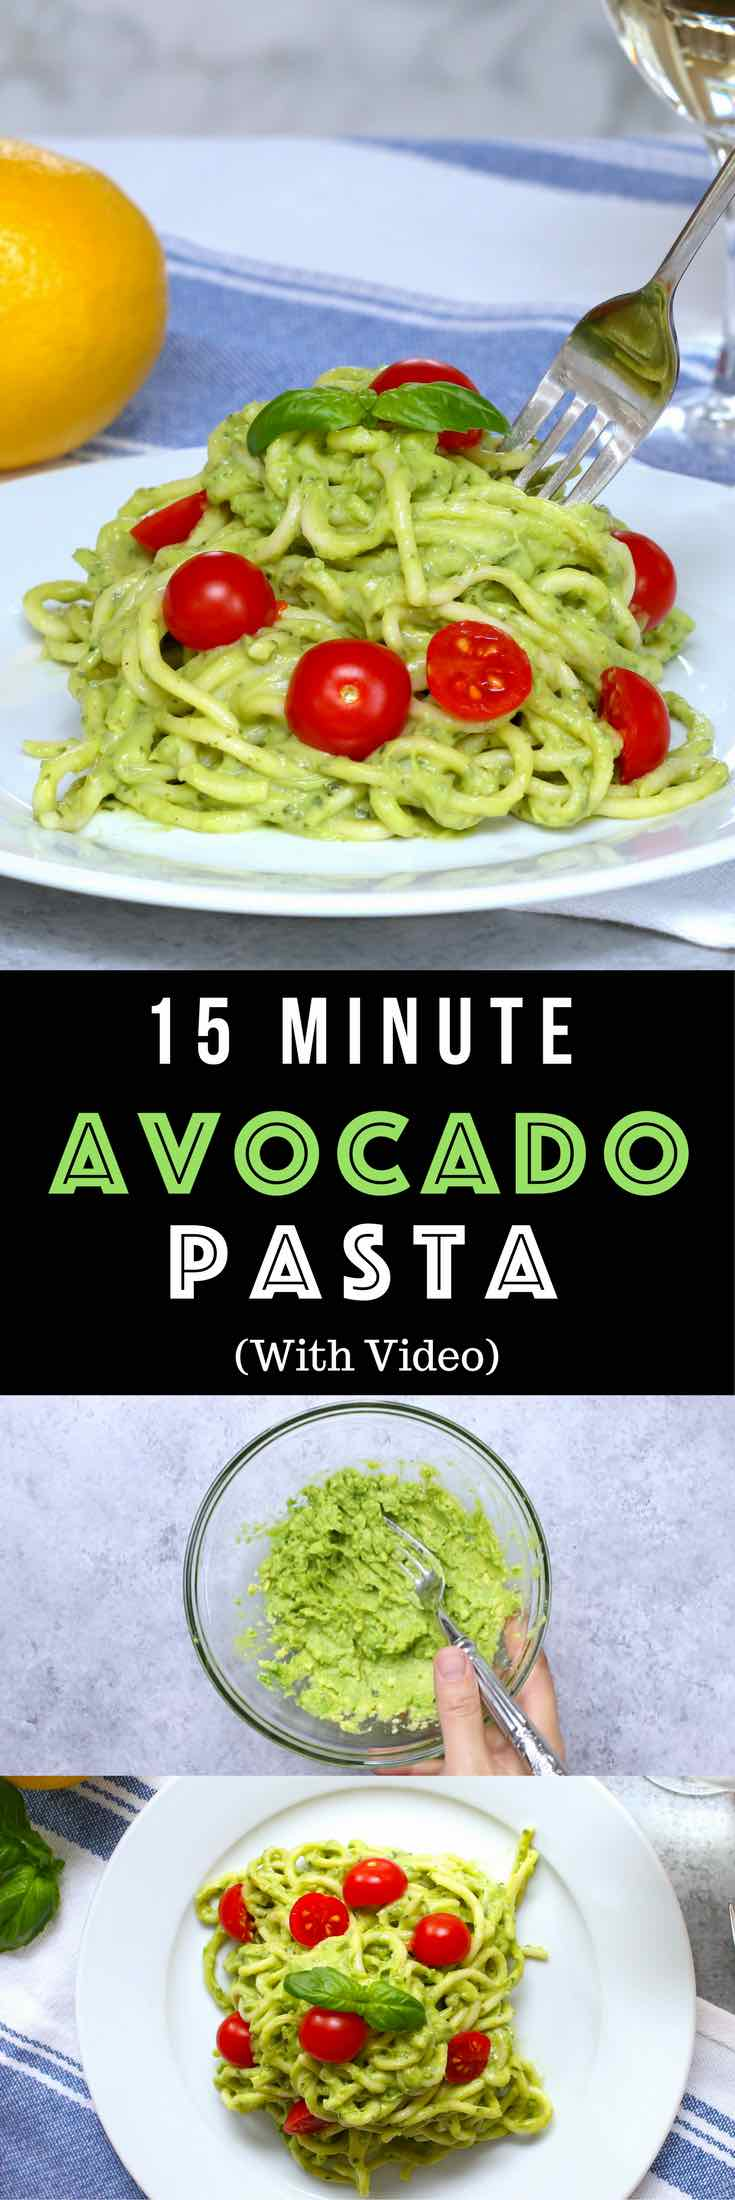 Easy, healthy, and on the table in about 15 minutes! Cream Avocado Pasta is the easiest and best avocado sauce pasta. All you need is a few simple ingredients: spaghetti, ripe avocados peeled and halved, fresh basil leaves, lemon, salt and pepper, olive oil and cherry tomatoes. Quick and easy lunch or dinner recipe. Eat without guilt. Vegetarian. Video recipe. | Tipbuzz.com